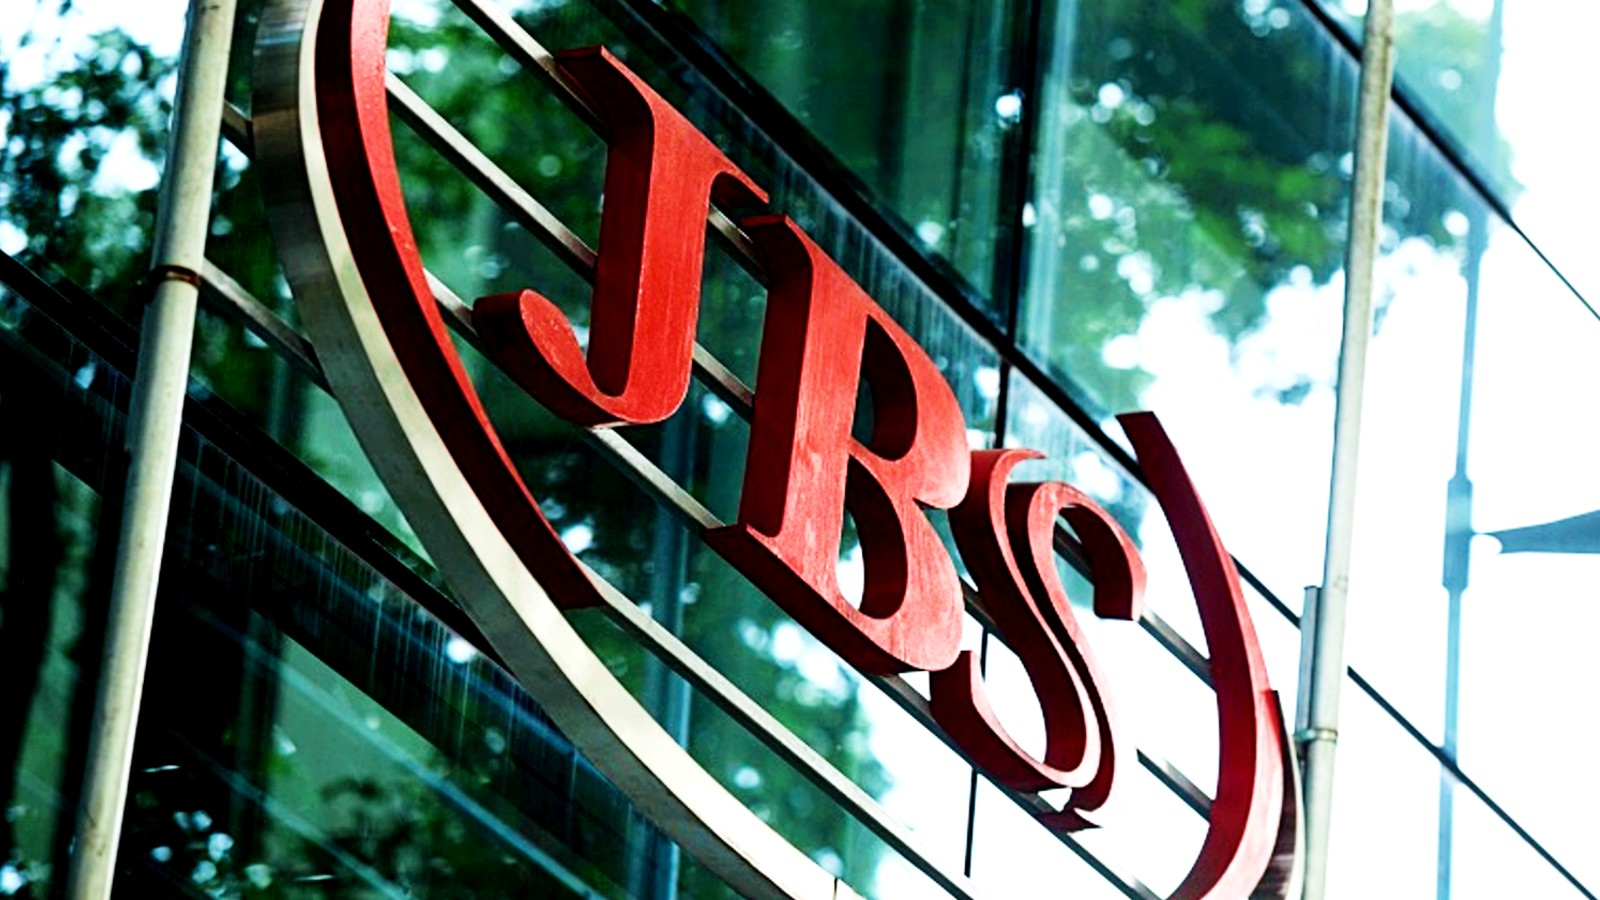 Food giant JBS Foods shuts down production after cyberattack